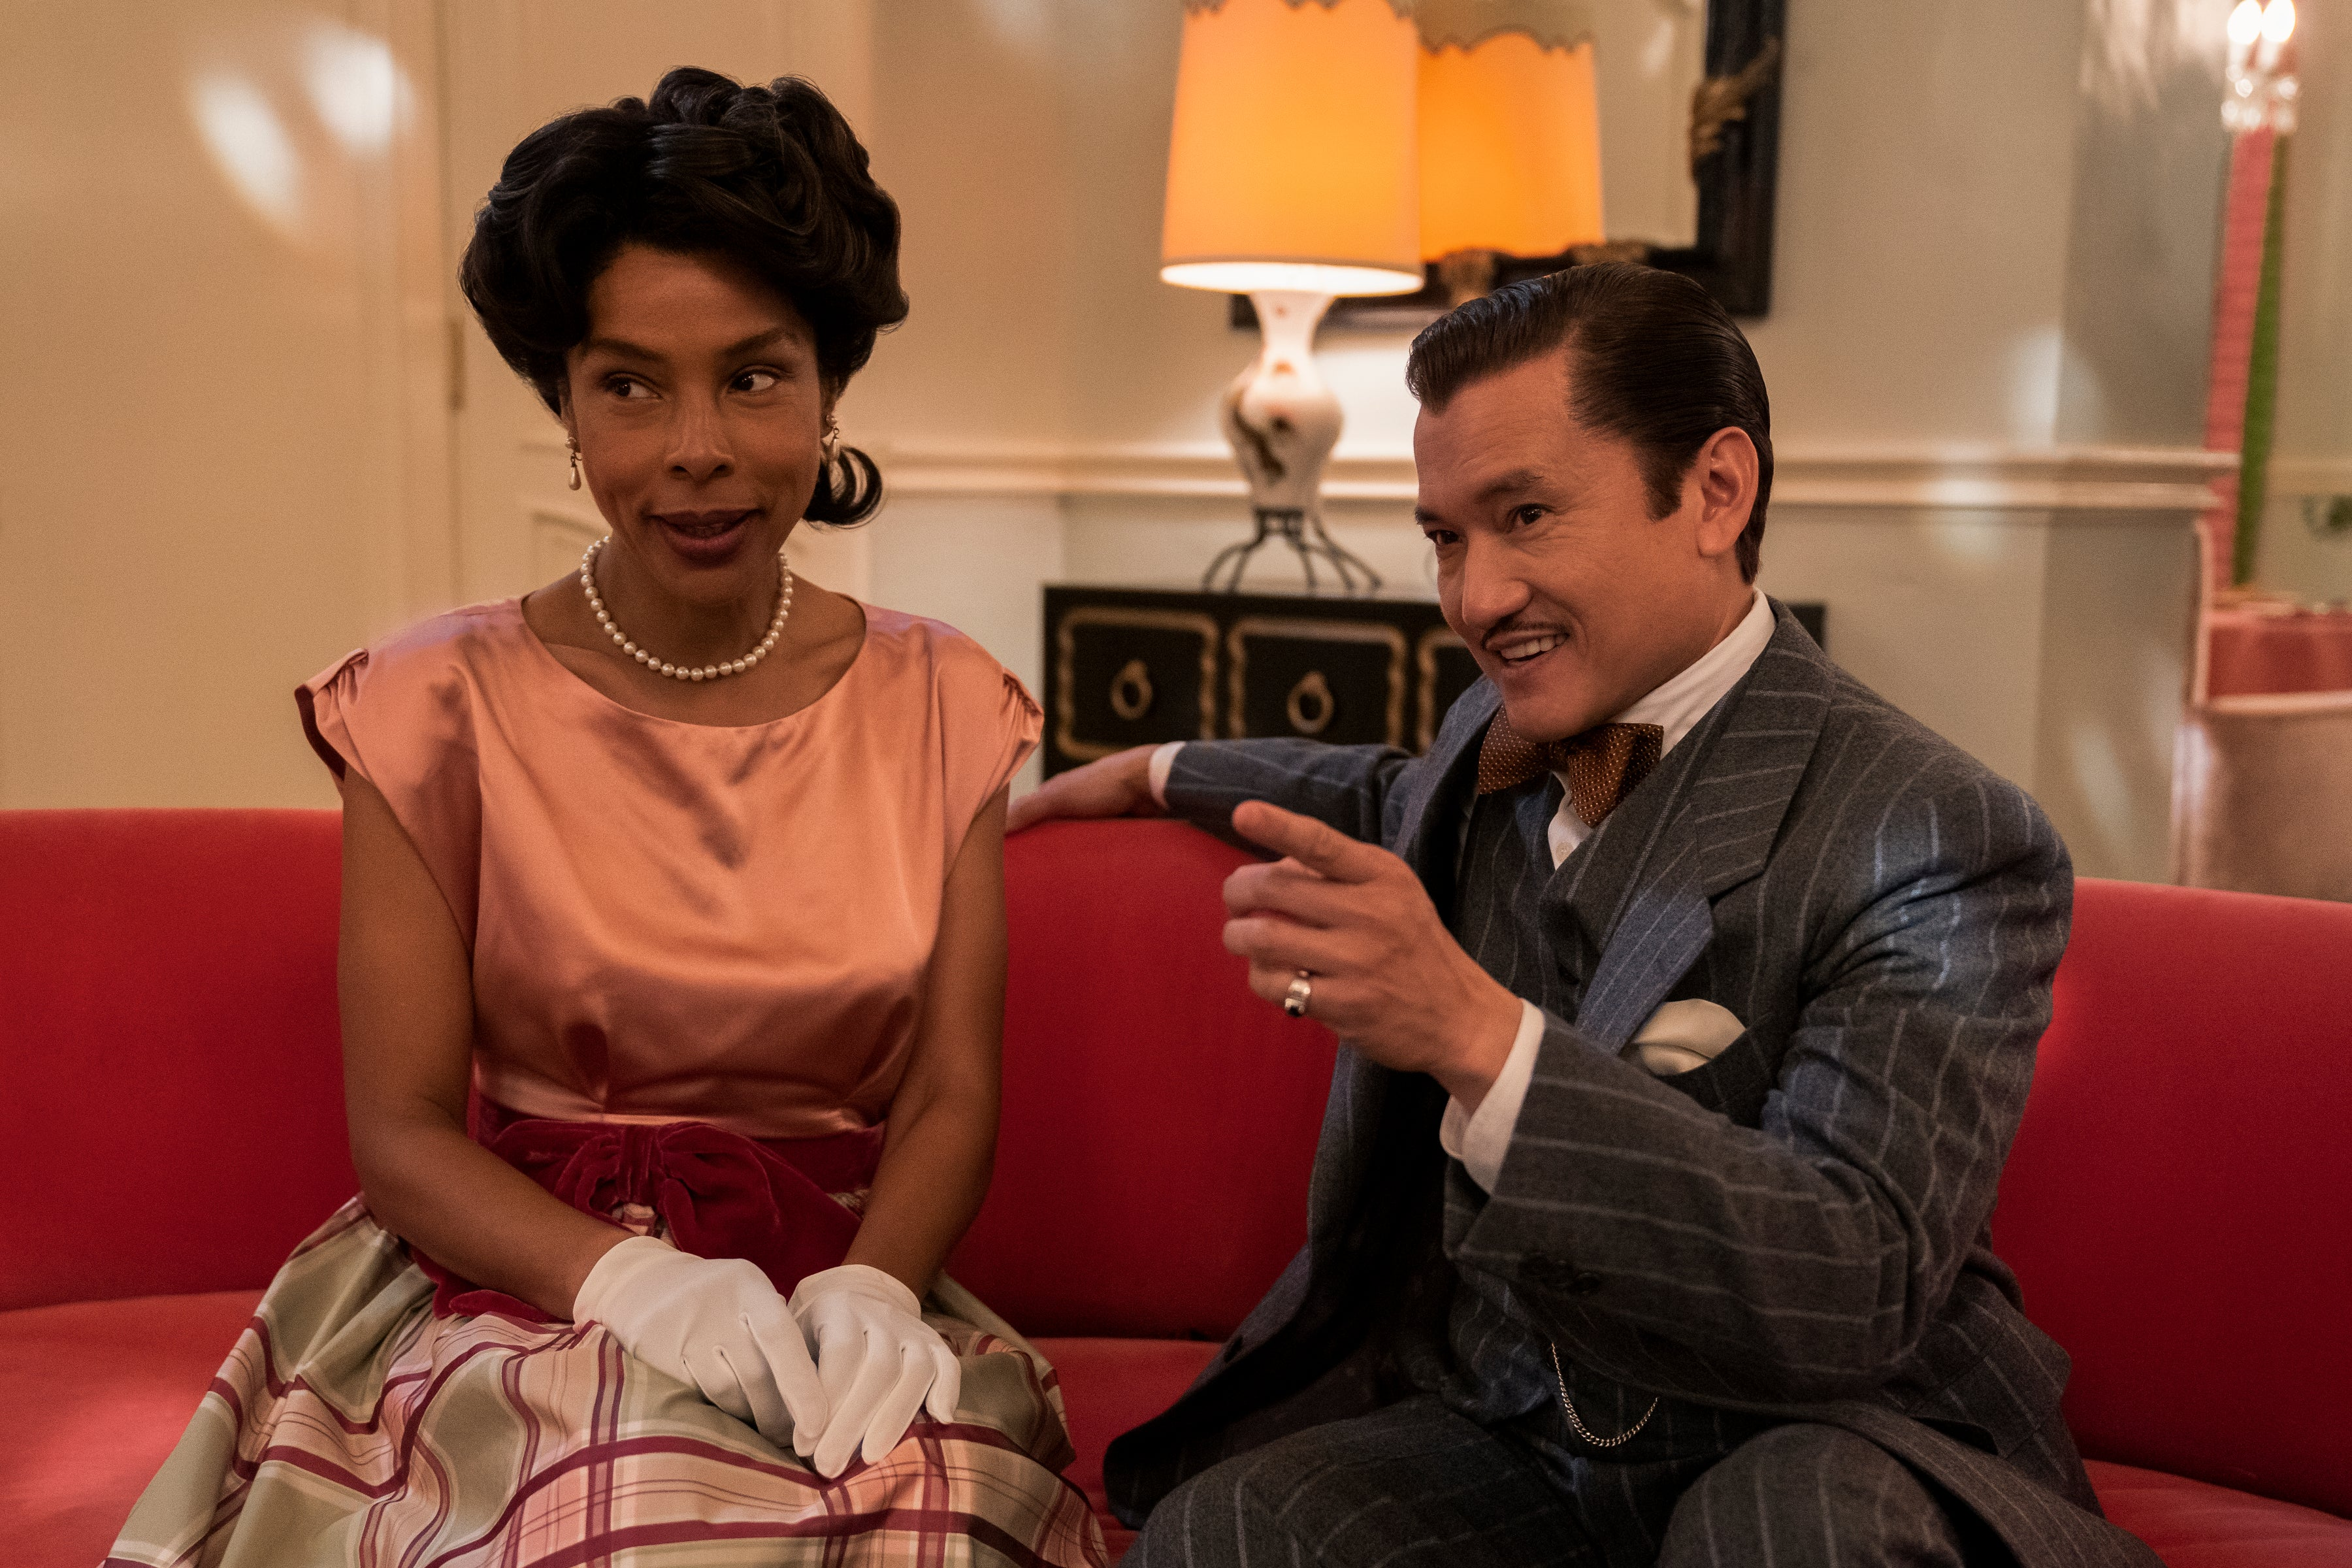 Creating style that captures character – Sophie Okonedo and Jon Jon Briones